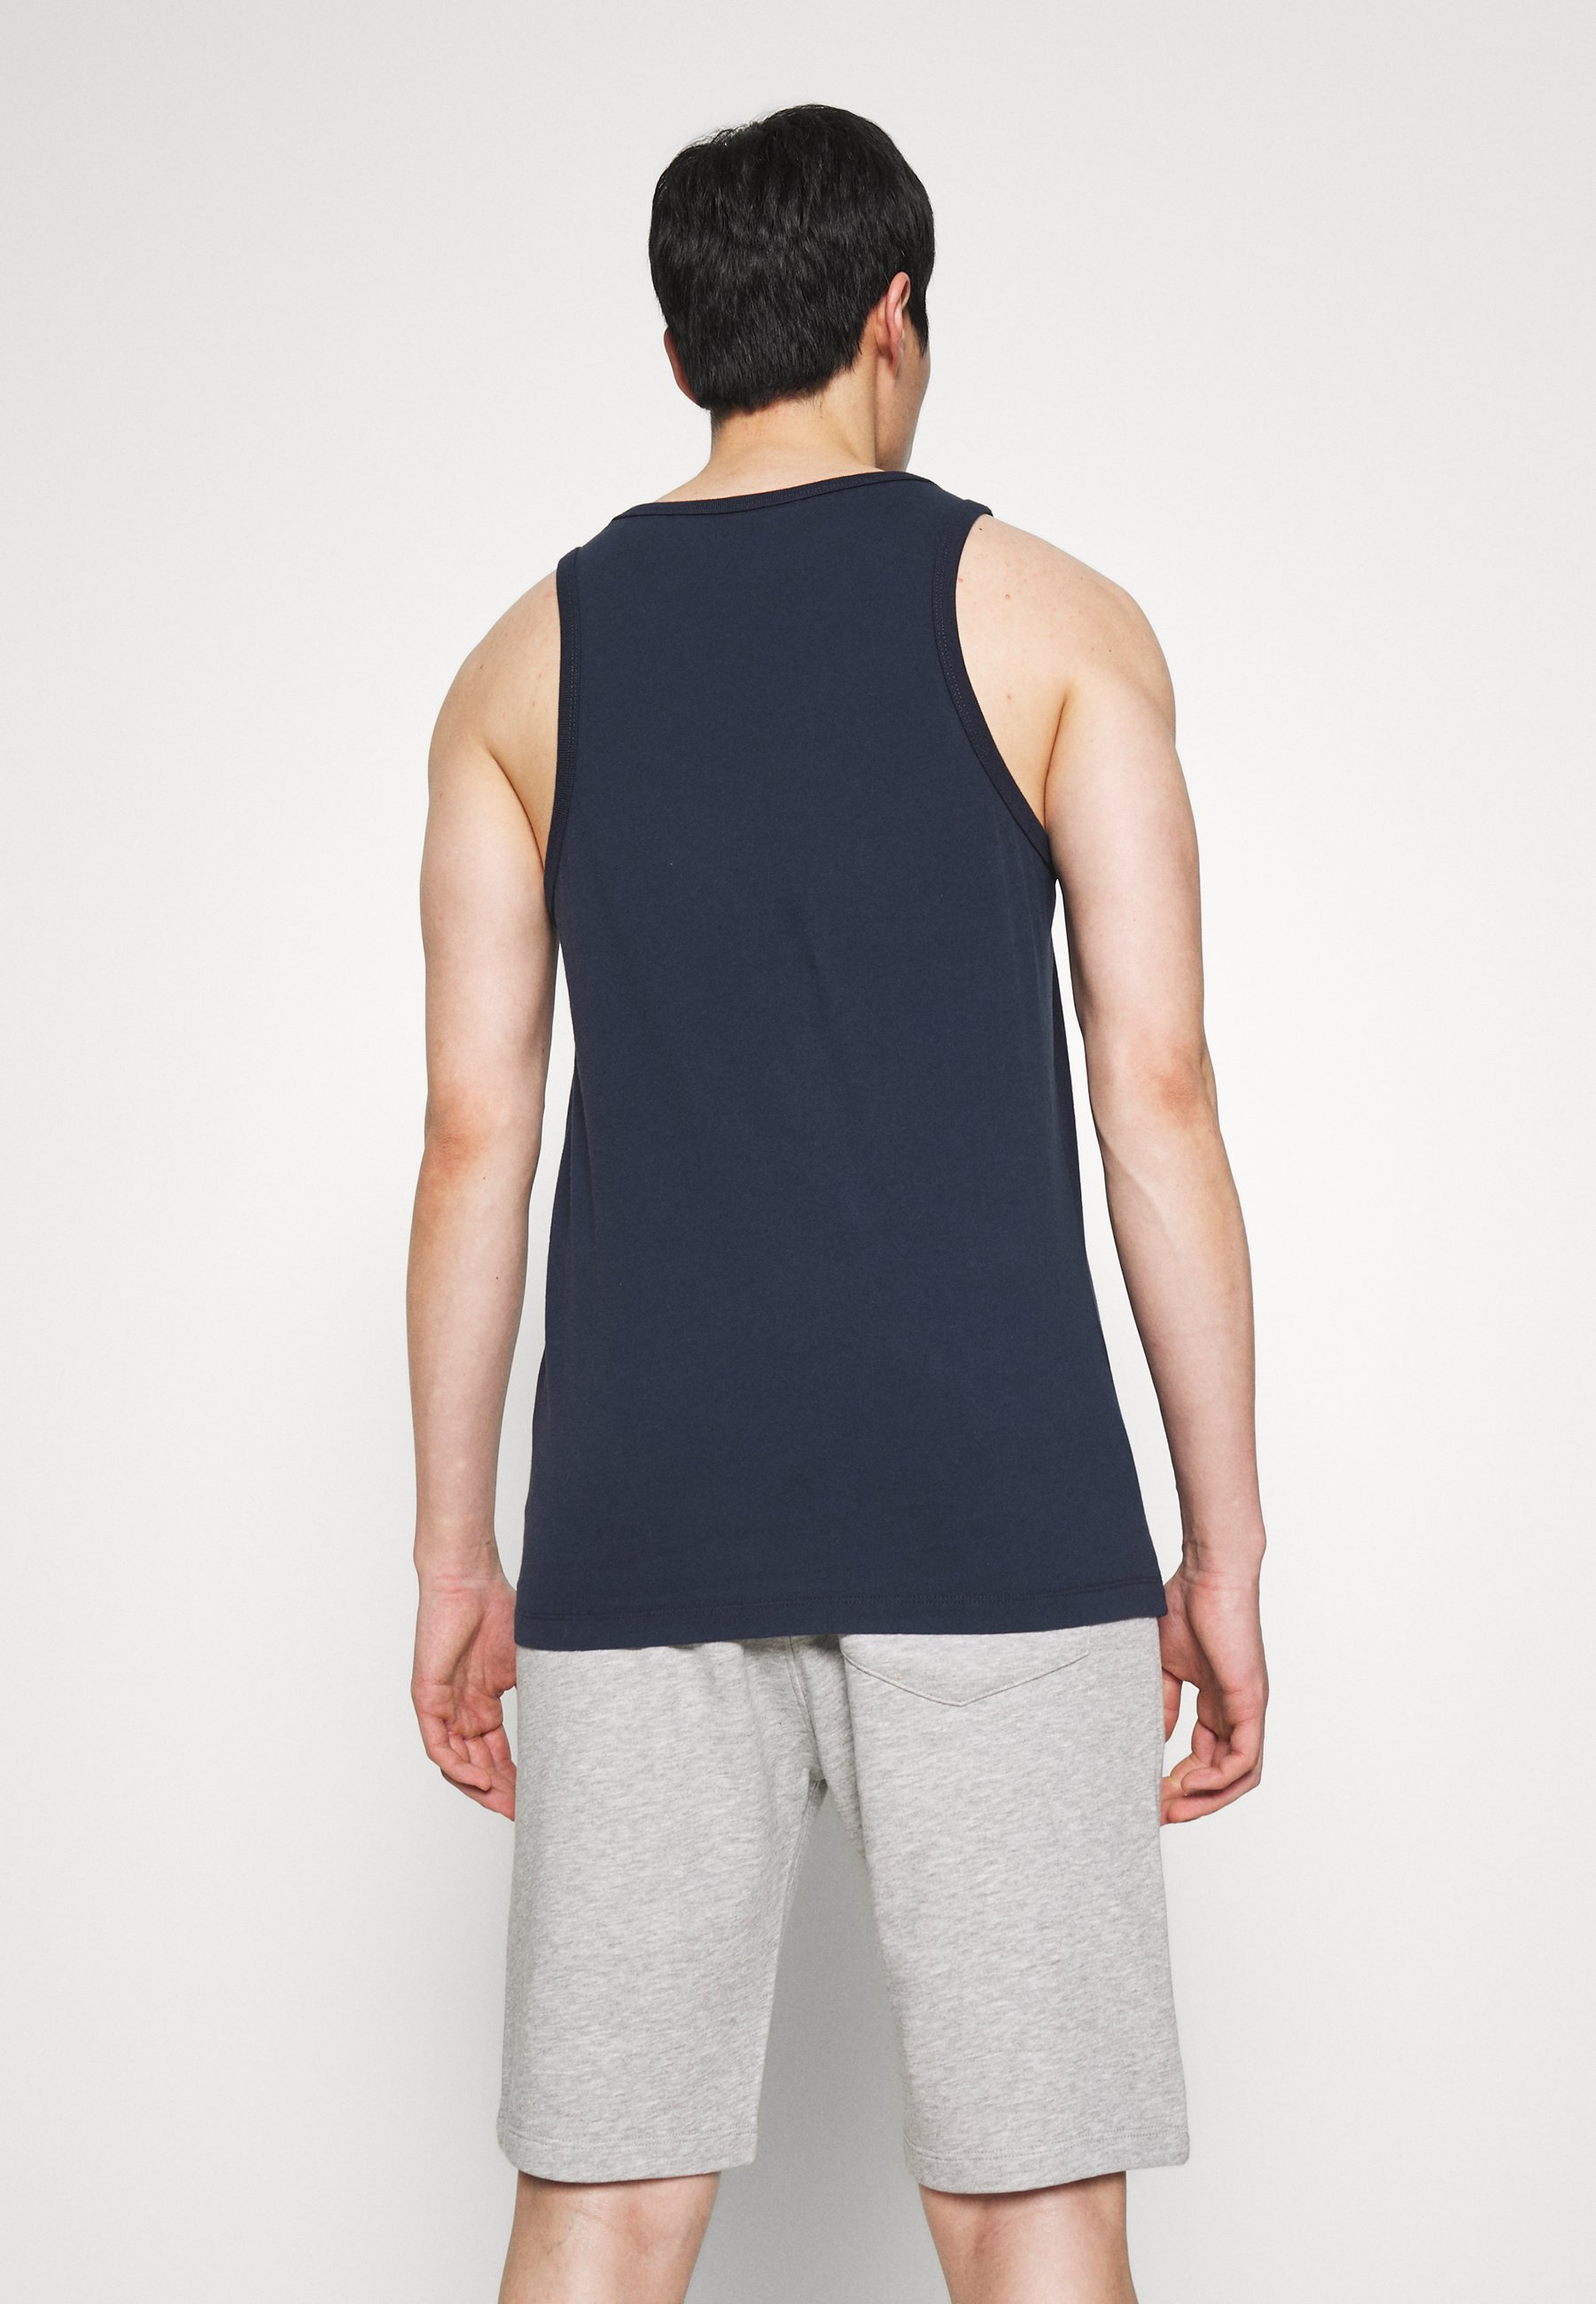 Superdry Top - rich navy